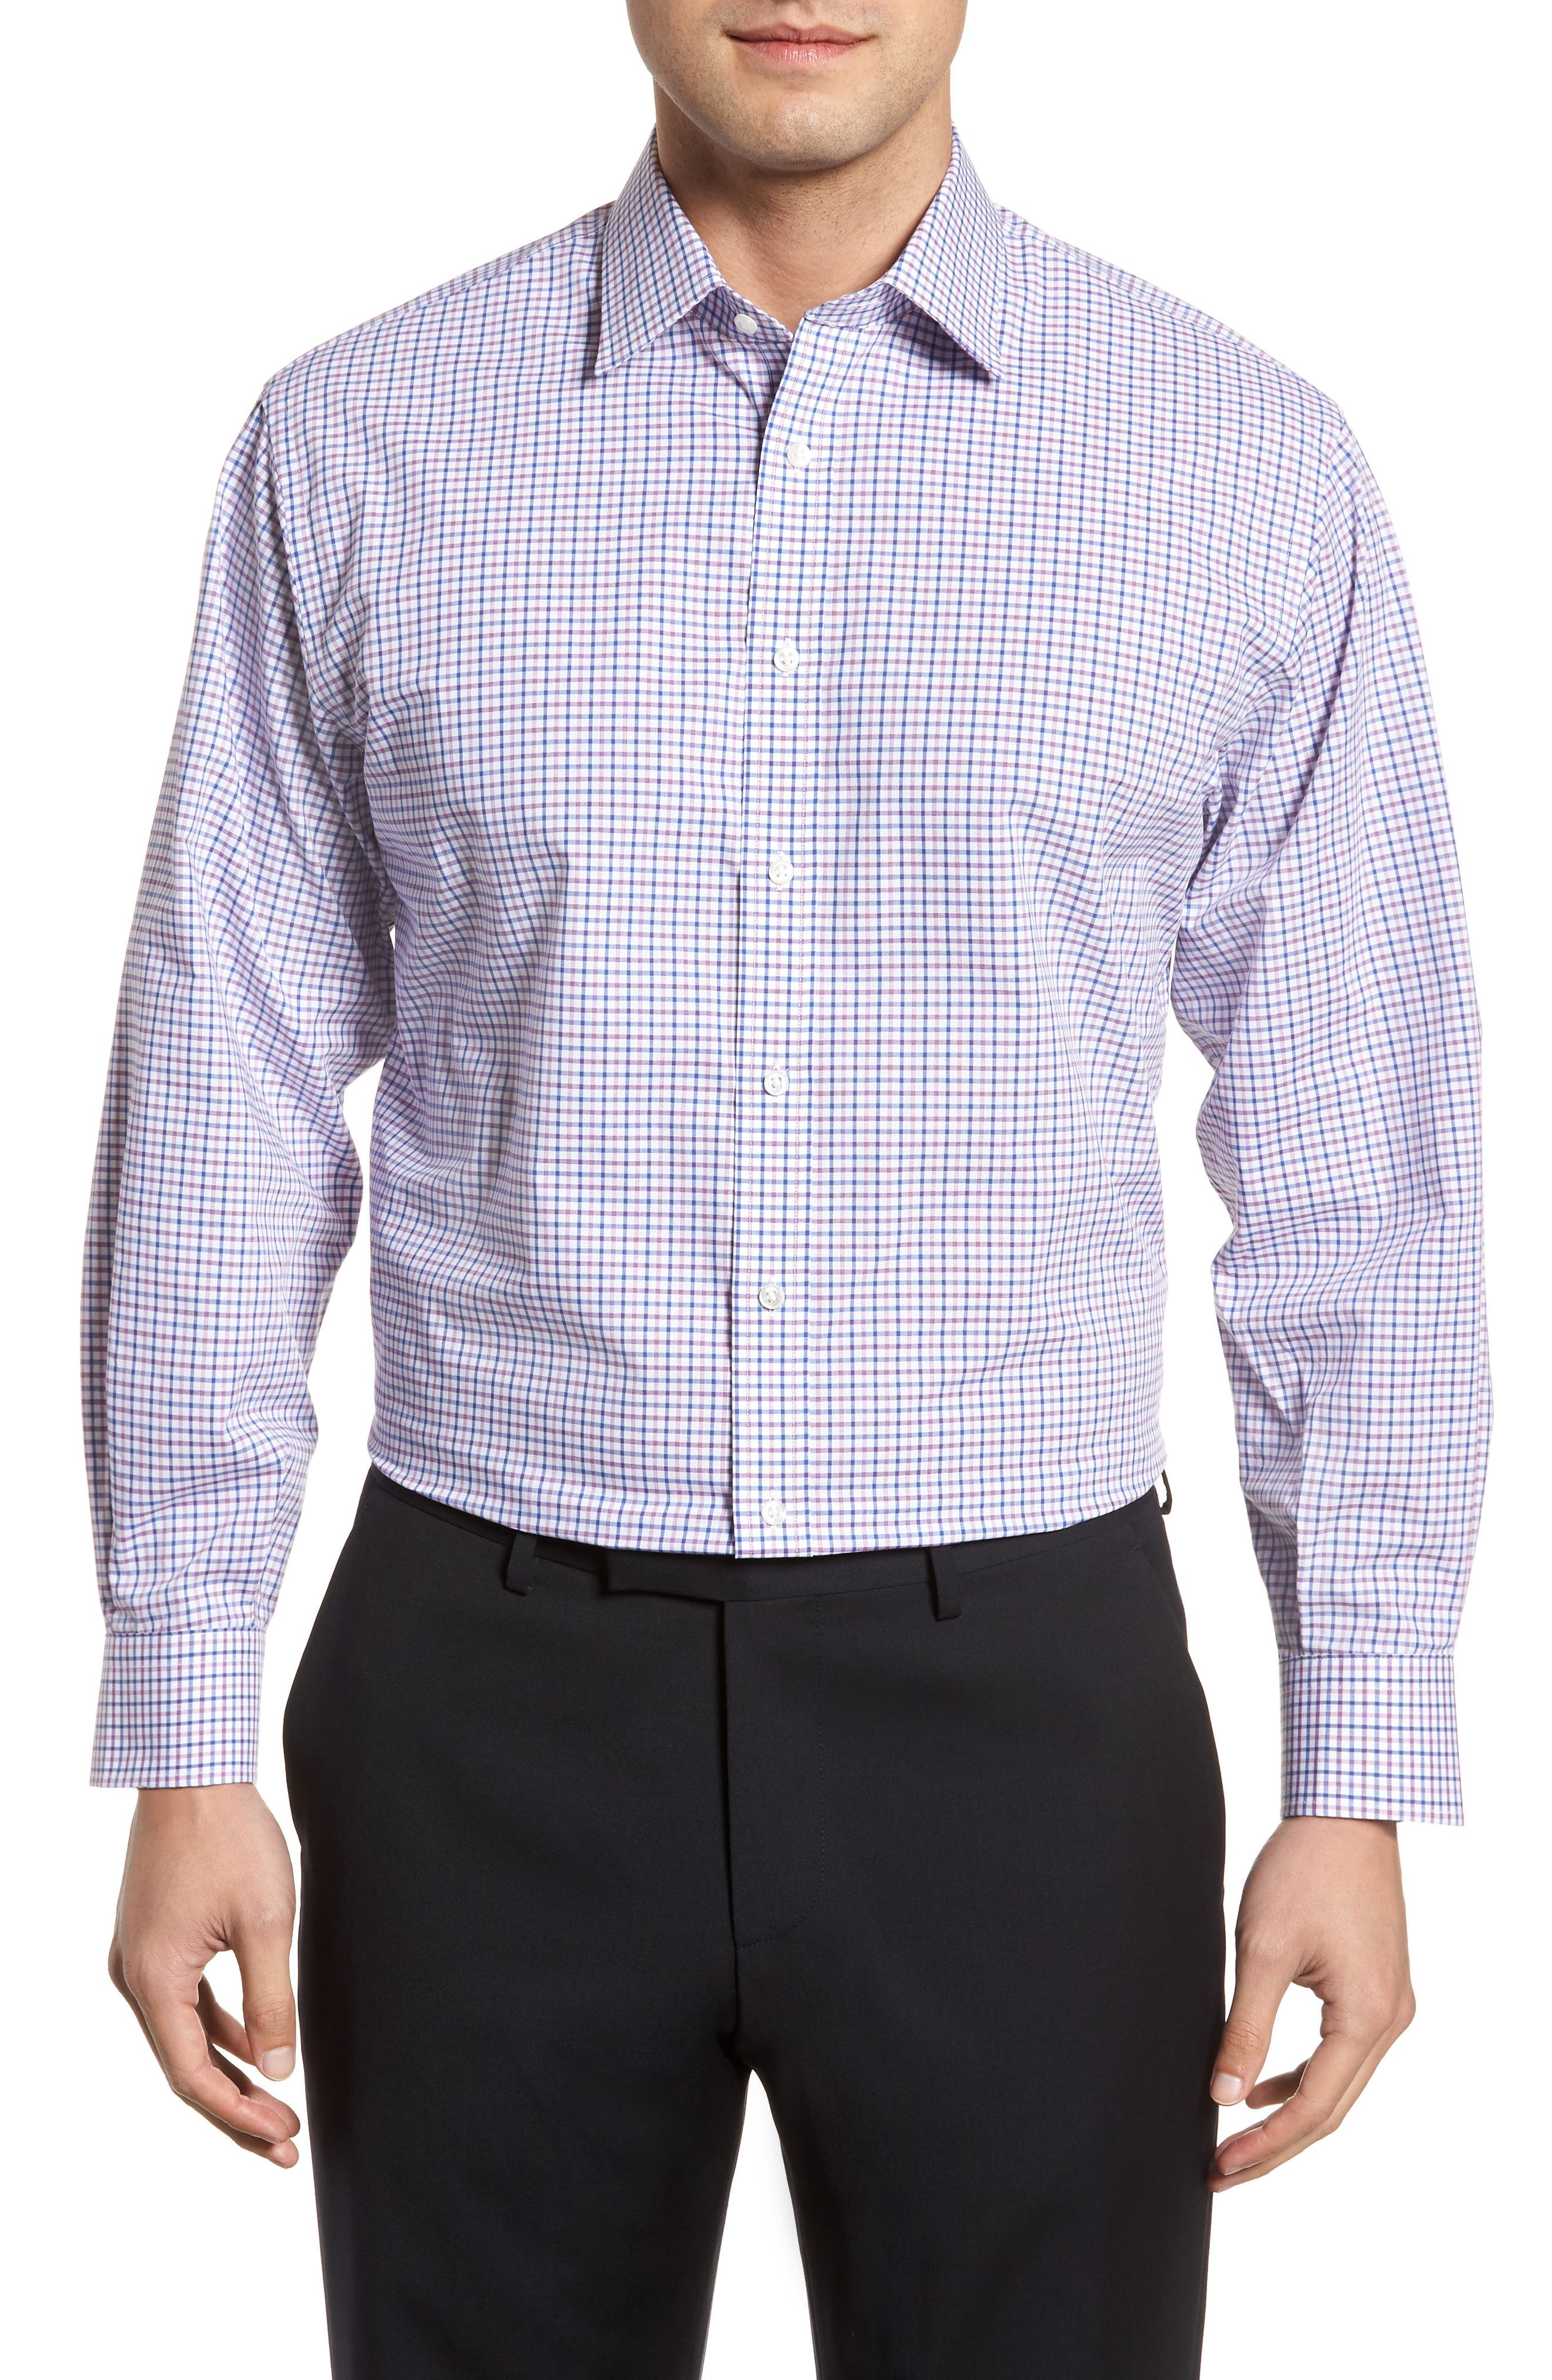 Alternate Image 1 Selected - Nordstrom Men's Shop Classic Fit Check Dress Shirt